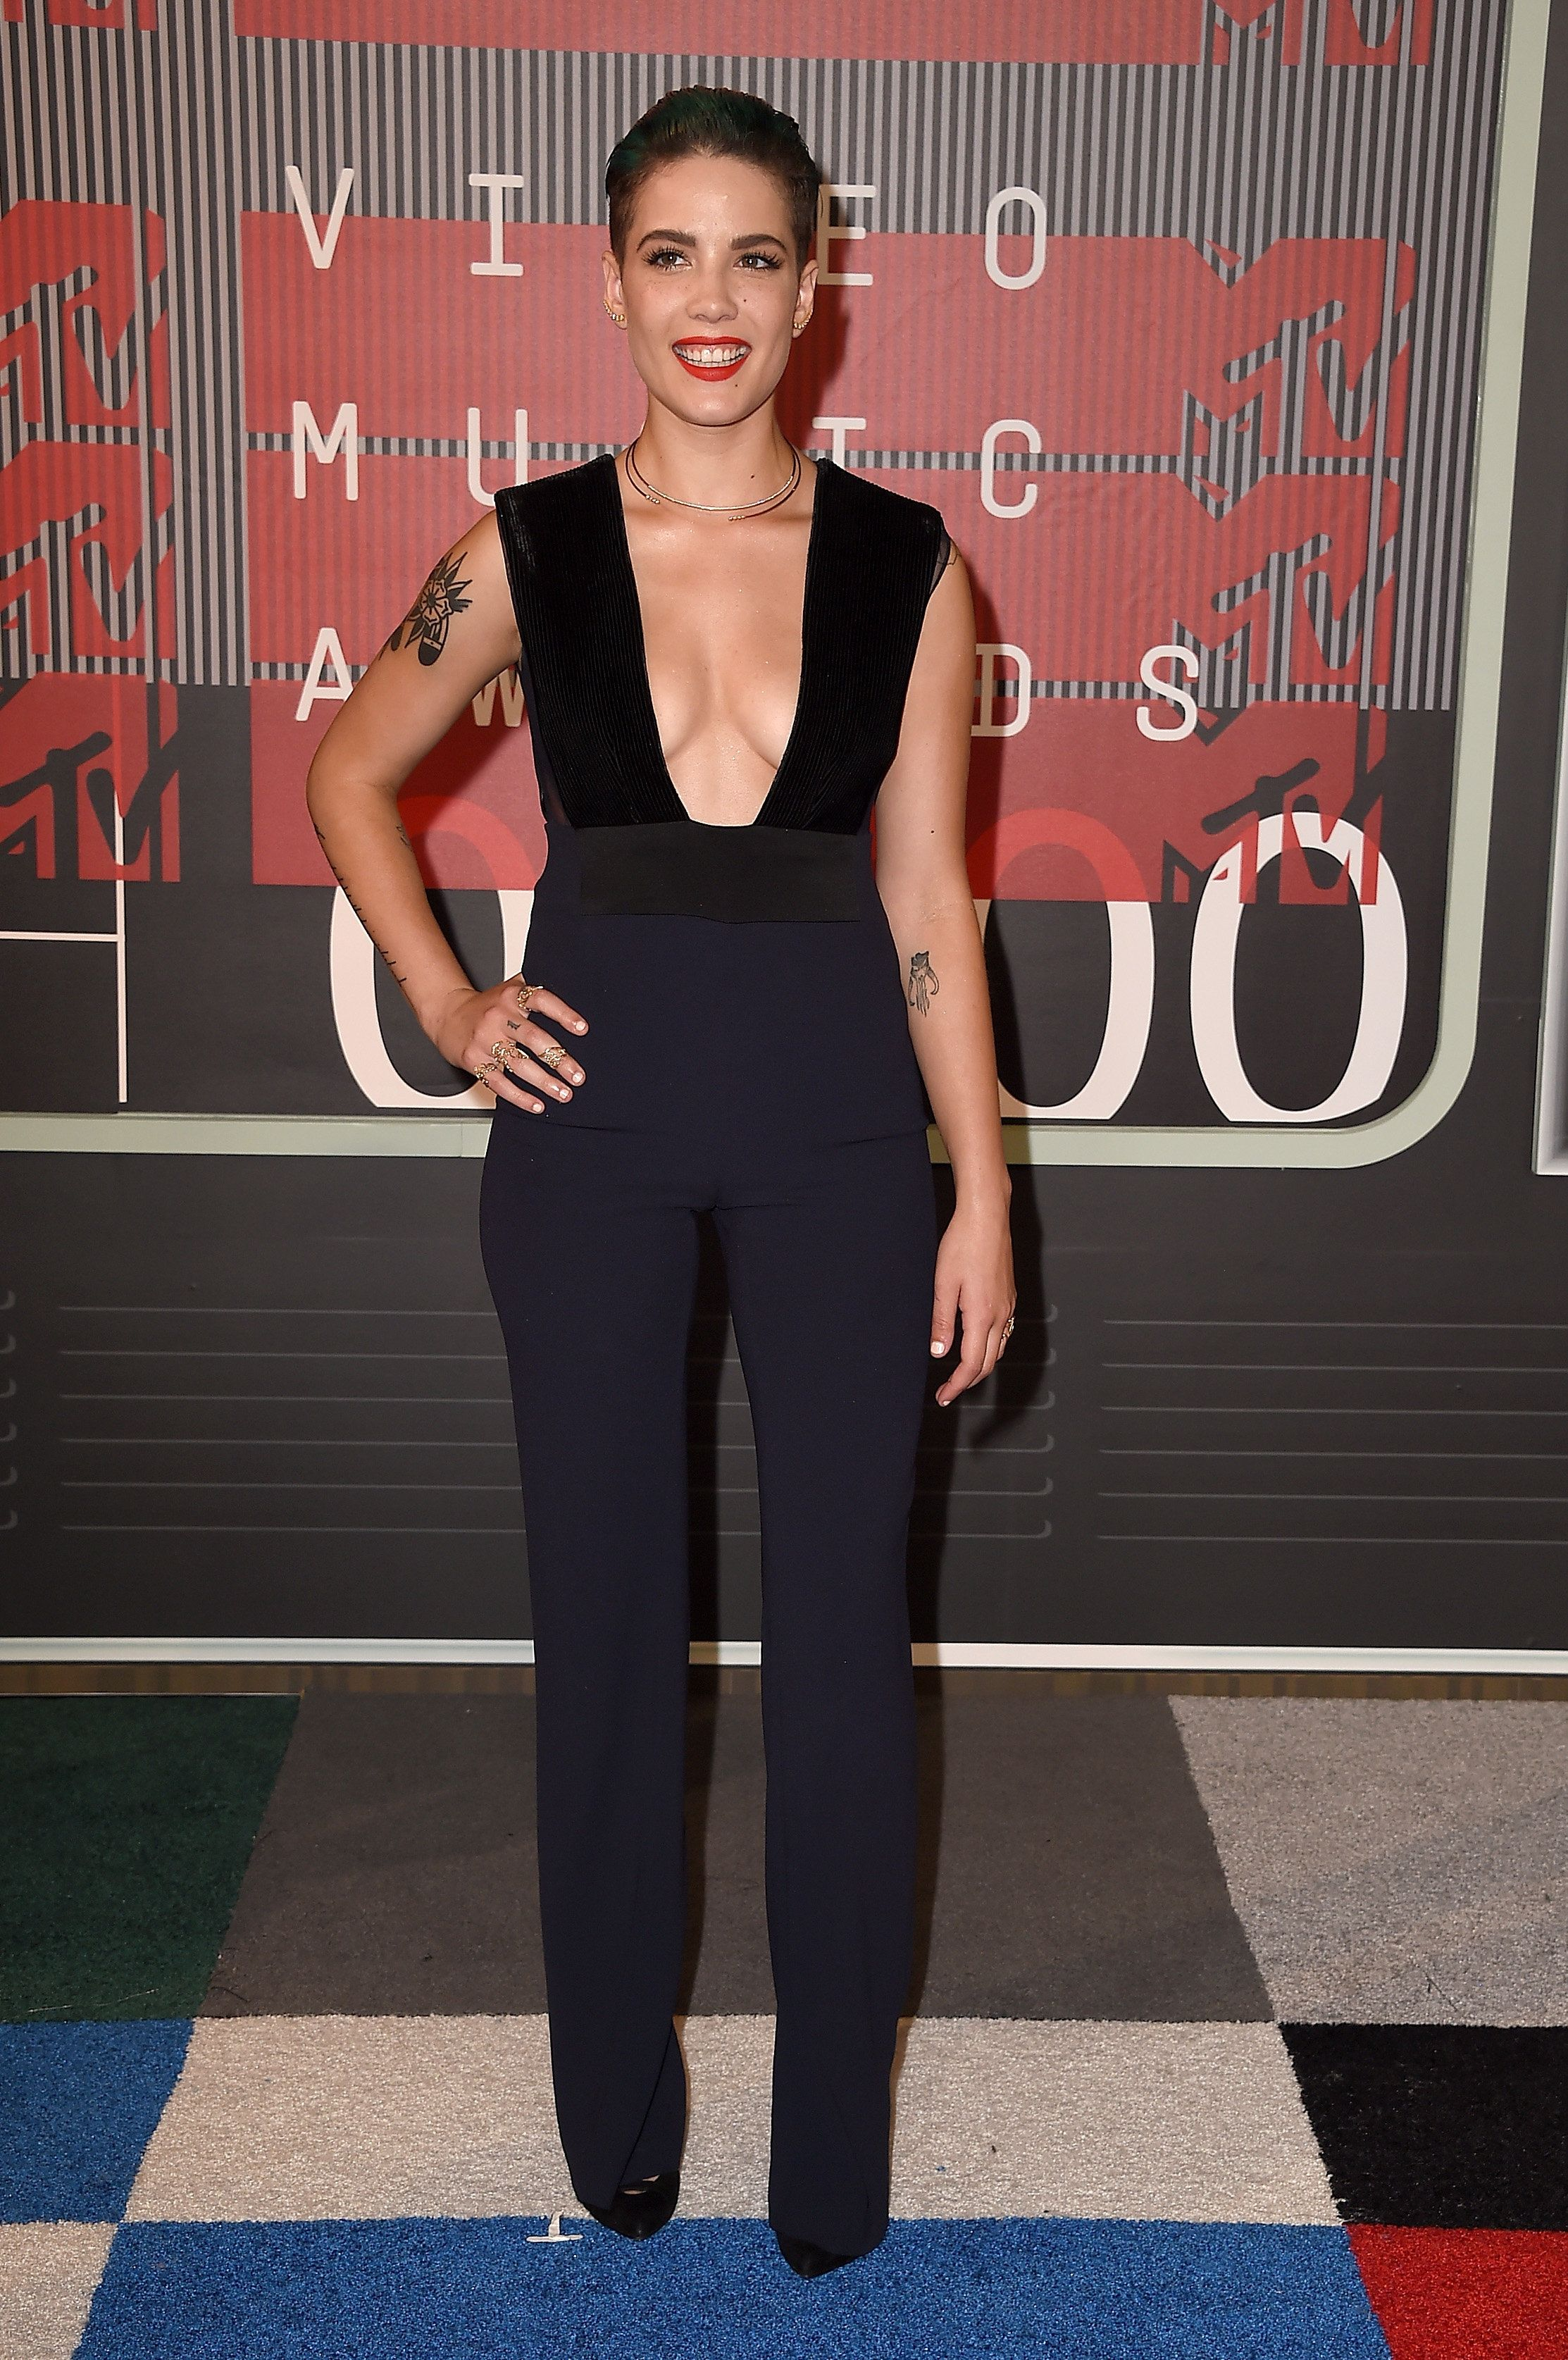 The singer at the MTV Video Music Awards on Aug. 30 in Los Angeles.